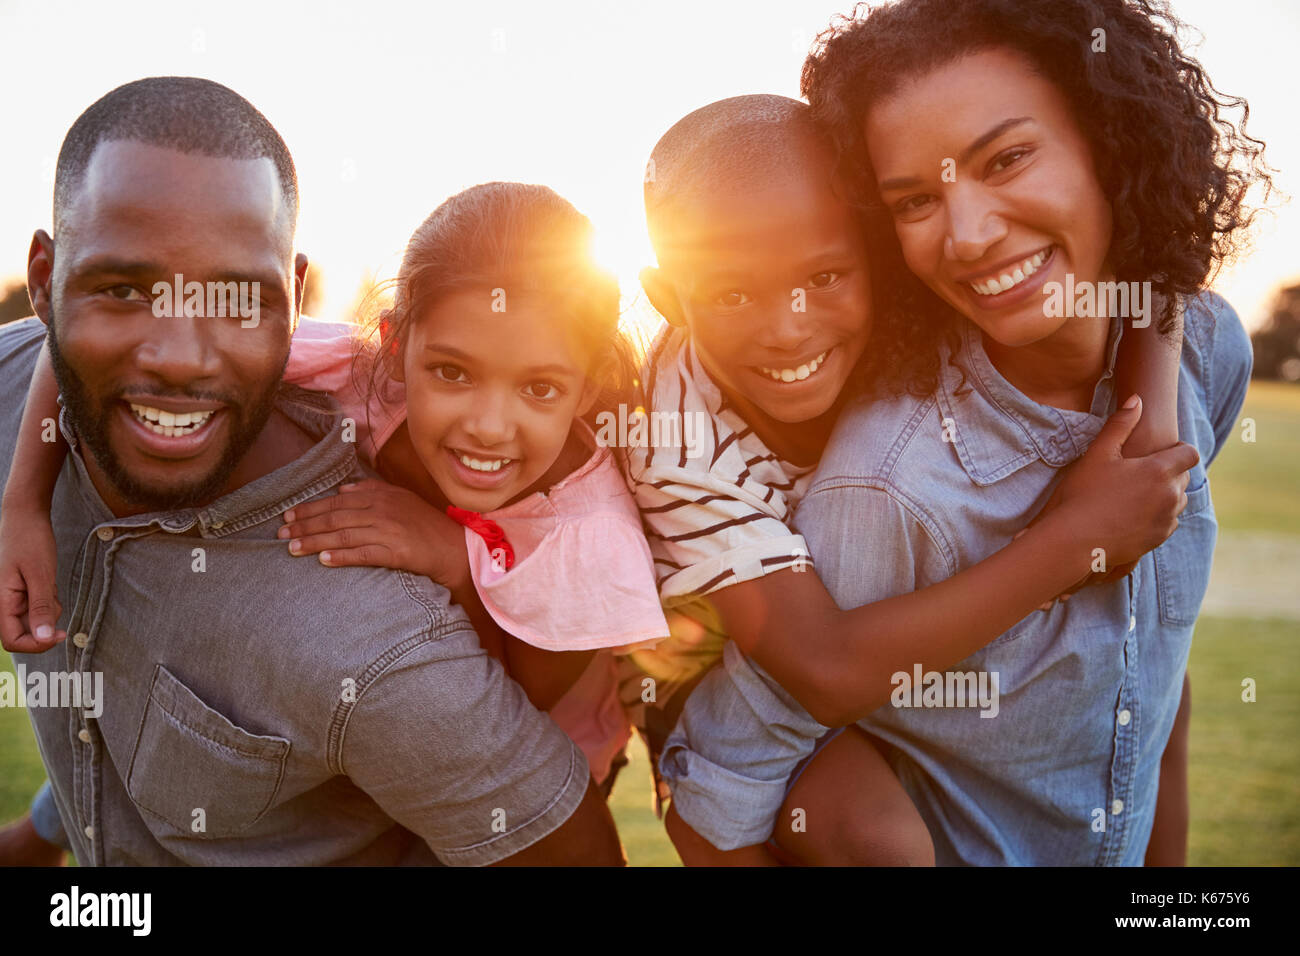 Young black couple with children on piggyback - Stock Image